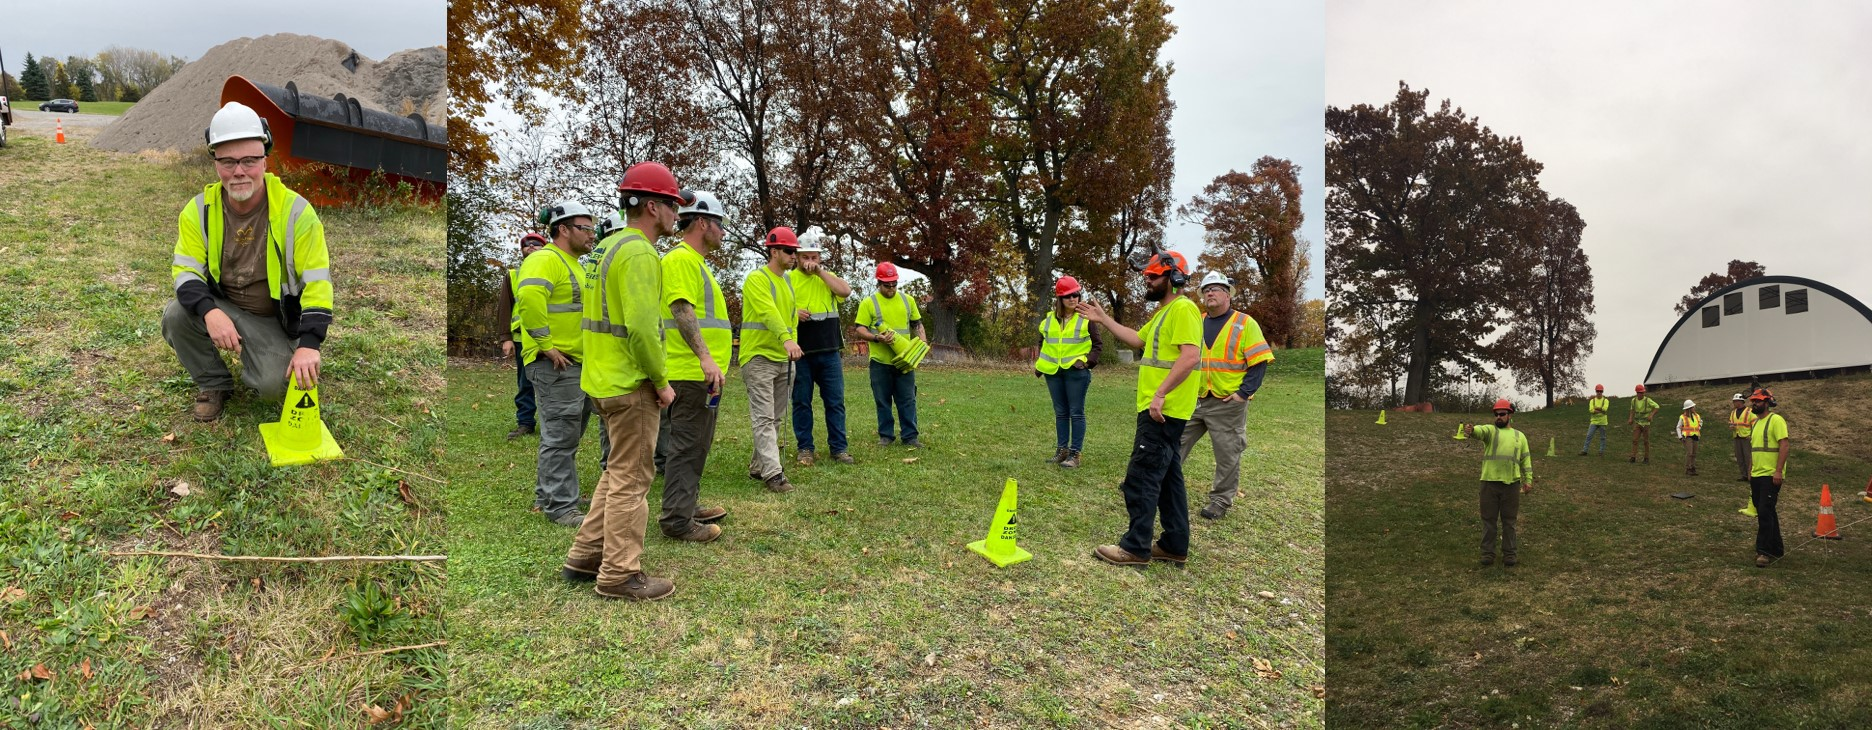 Utility Line Clearance Skill Drill Training